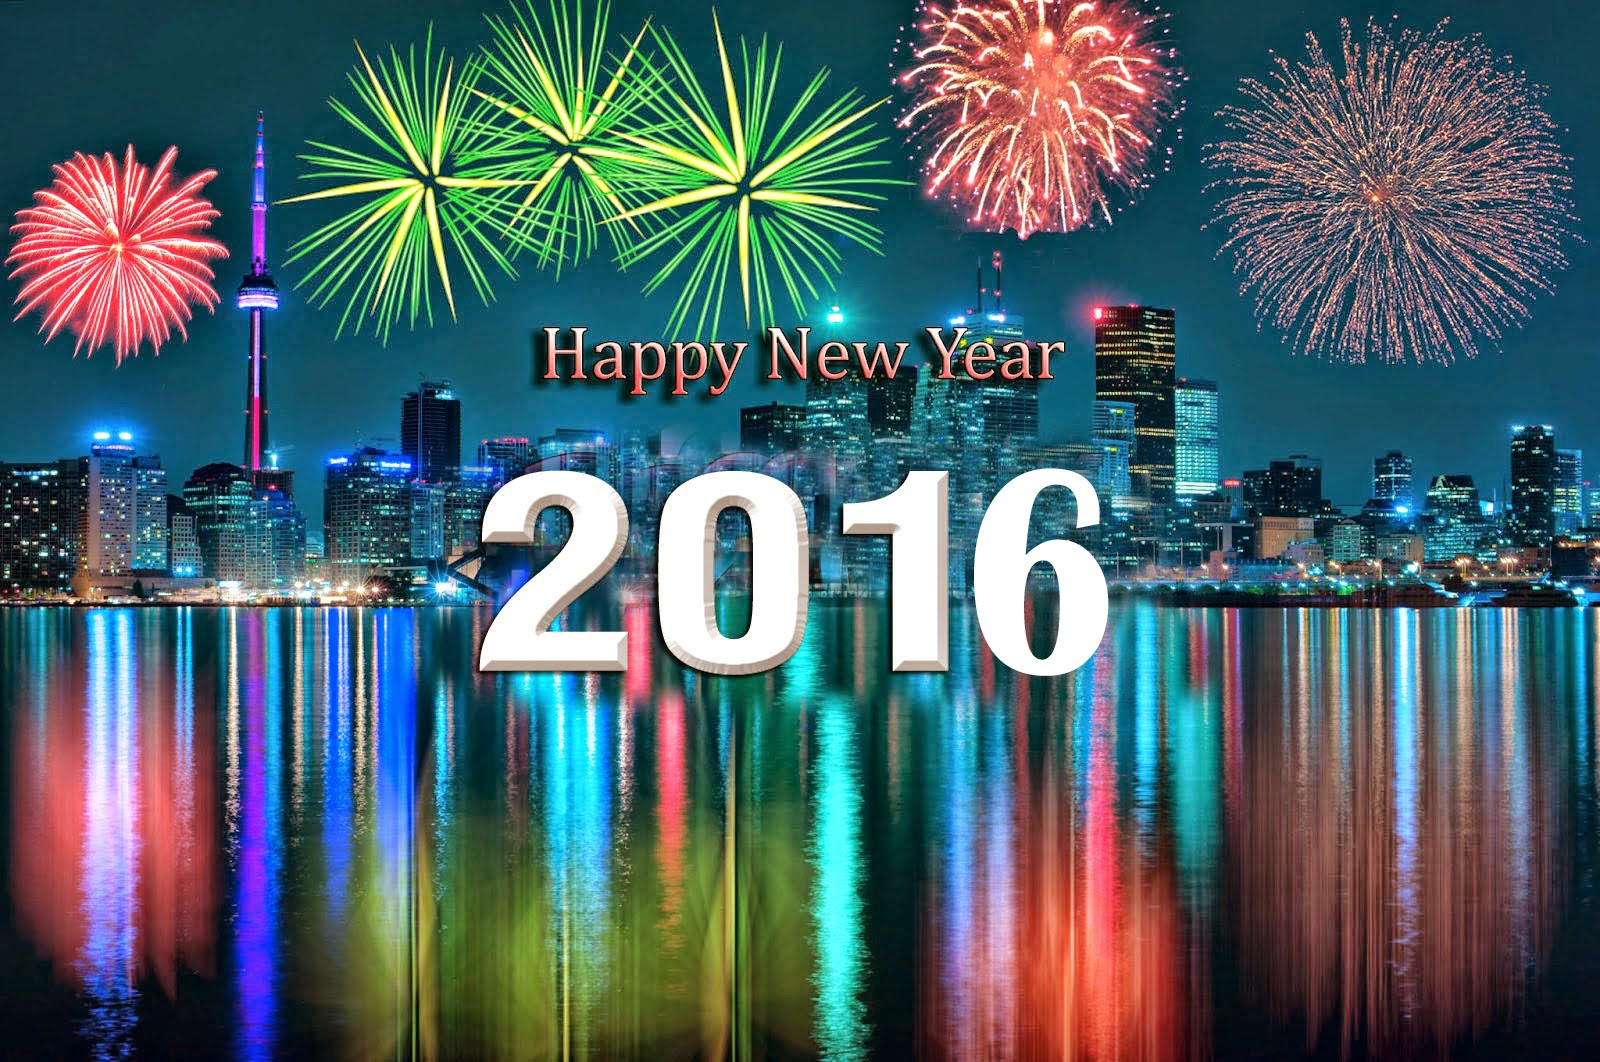 Happy New Year 2016 Wallpapers Photography Click As Your Mod 1600x1062